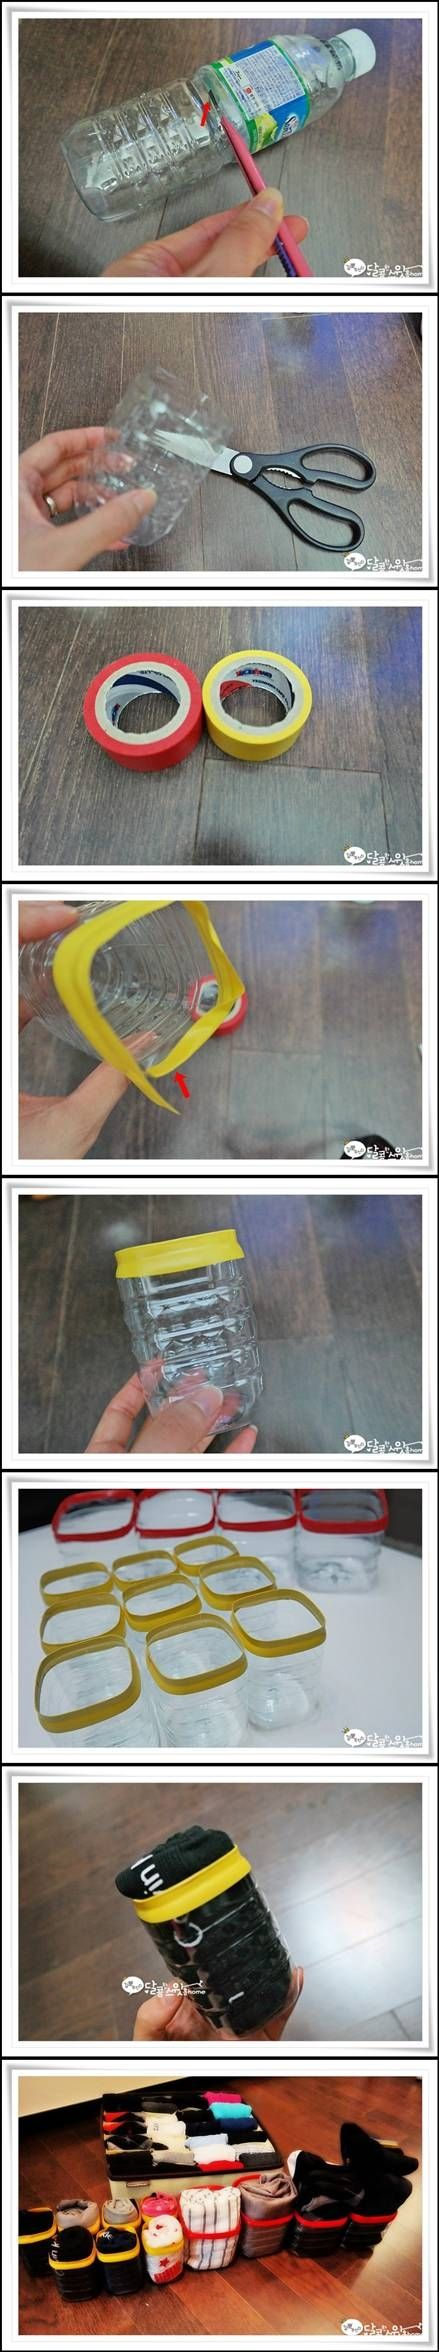 DIY Plastic Bottle Underwear Organizer diy easy crafts diy ideas diy crafts do it yourself home crafts easy diy organizer diy organization craft organization home diy diy tutorials